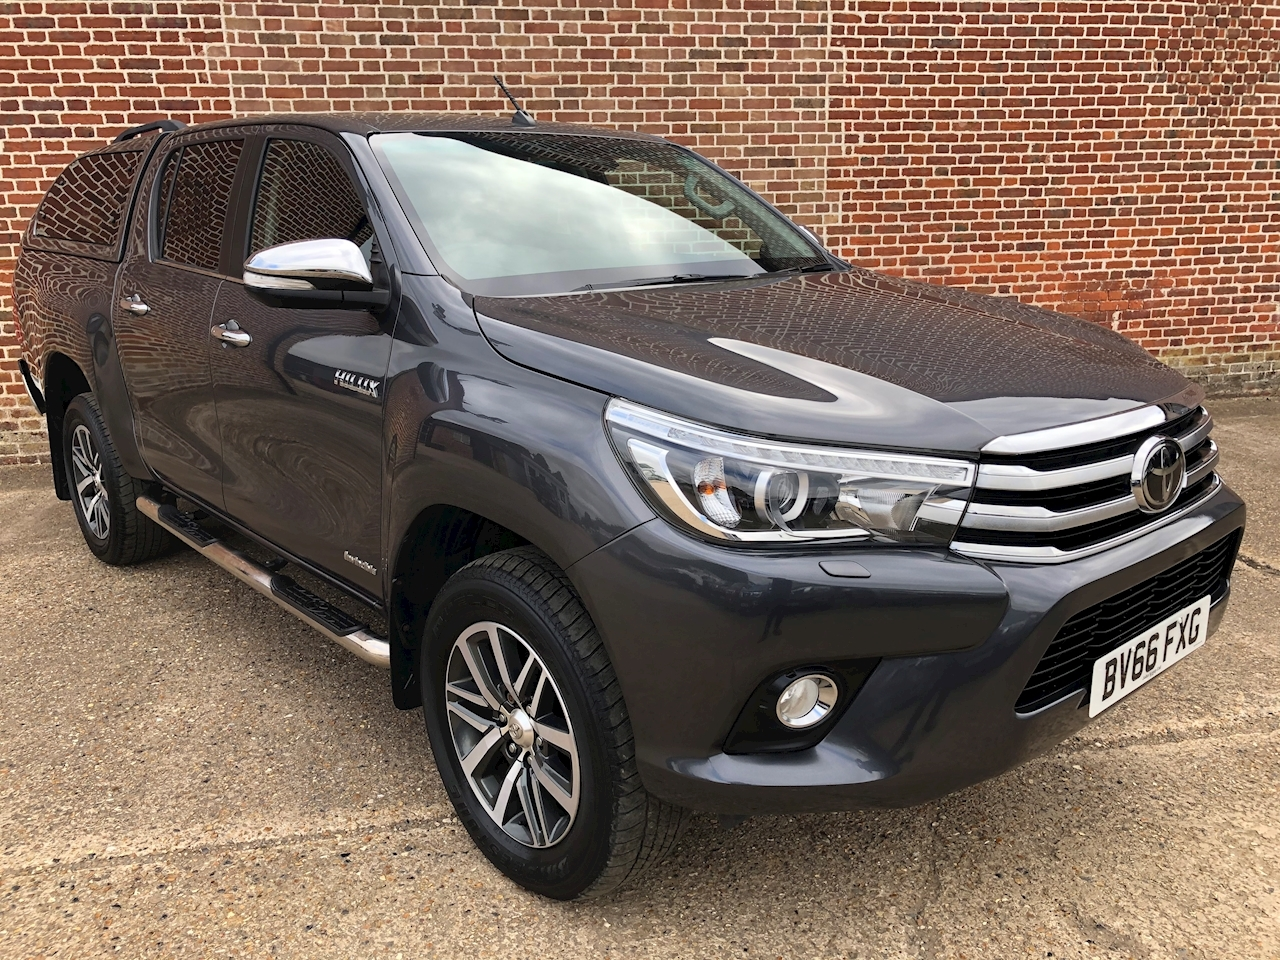 Hilux Invincible 4Wd D-4D Dcb 2.4 4dr Light 4X4 Utility Manual Diesel